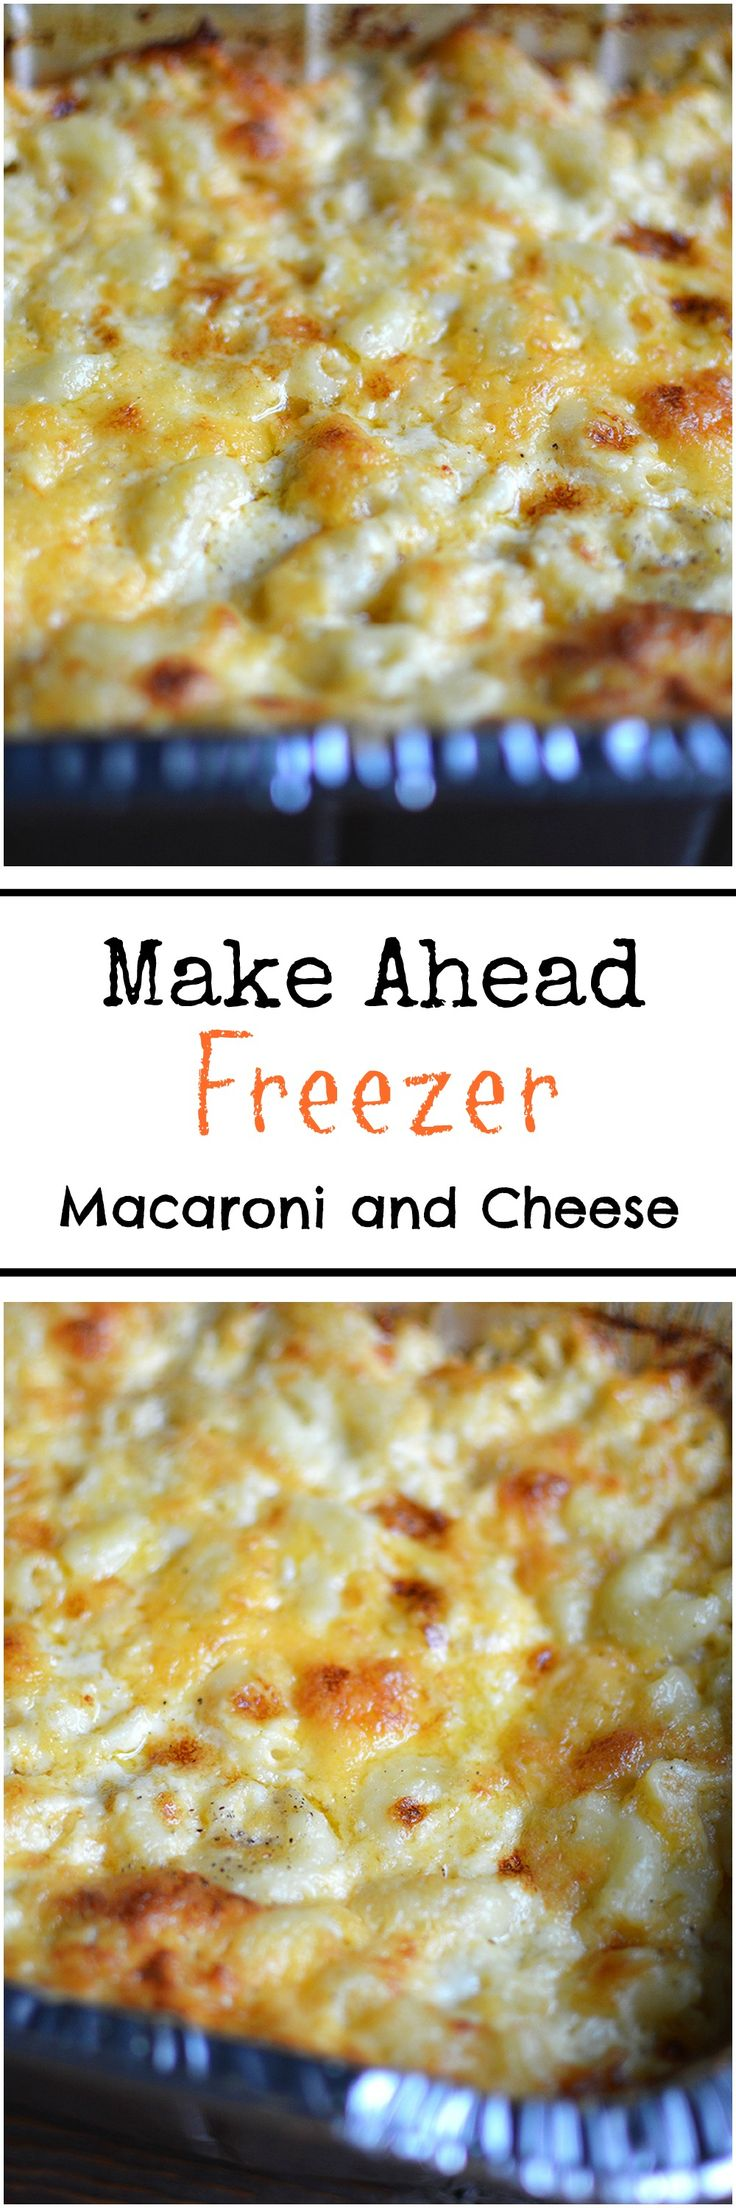 Getting Sunday and Holiday Dinners Ready Ahead of Time with My Make Ahead Freezer Macaroni and Cheese.